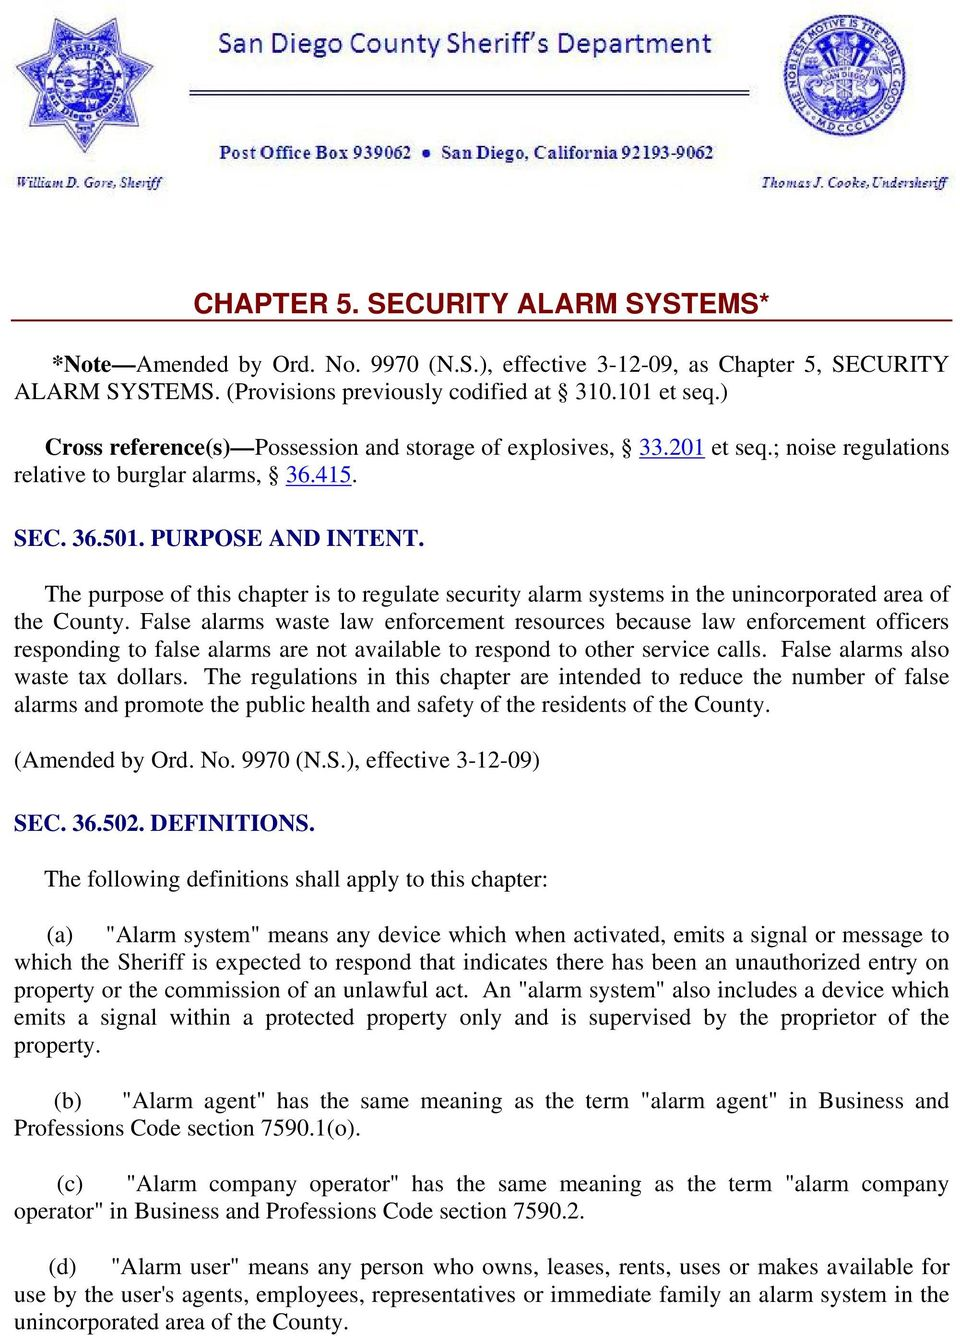 The purpose of this chapter is to regulate security alarm systems in the unincorporated area of the County.